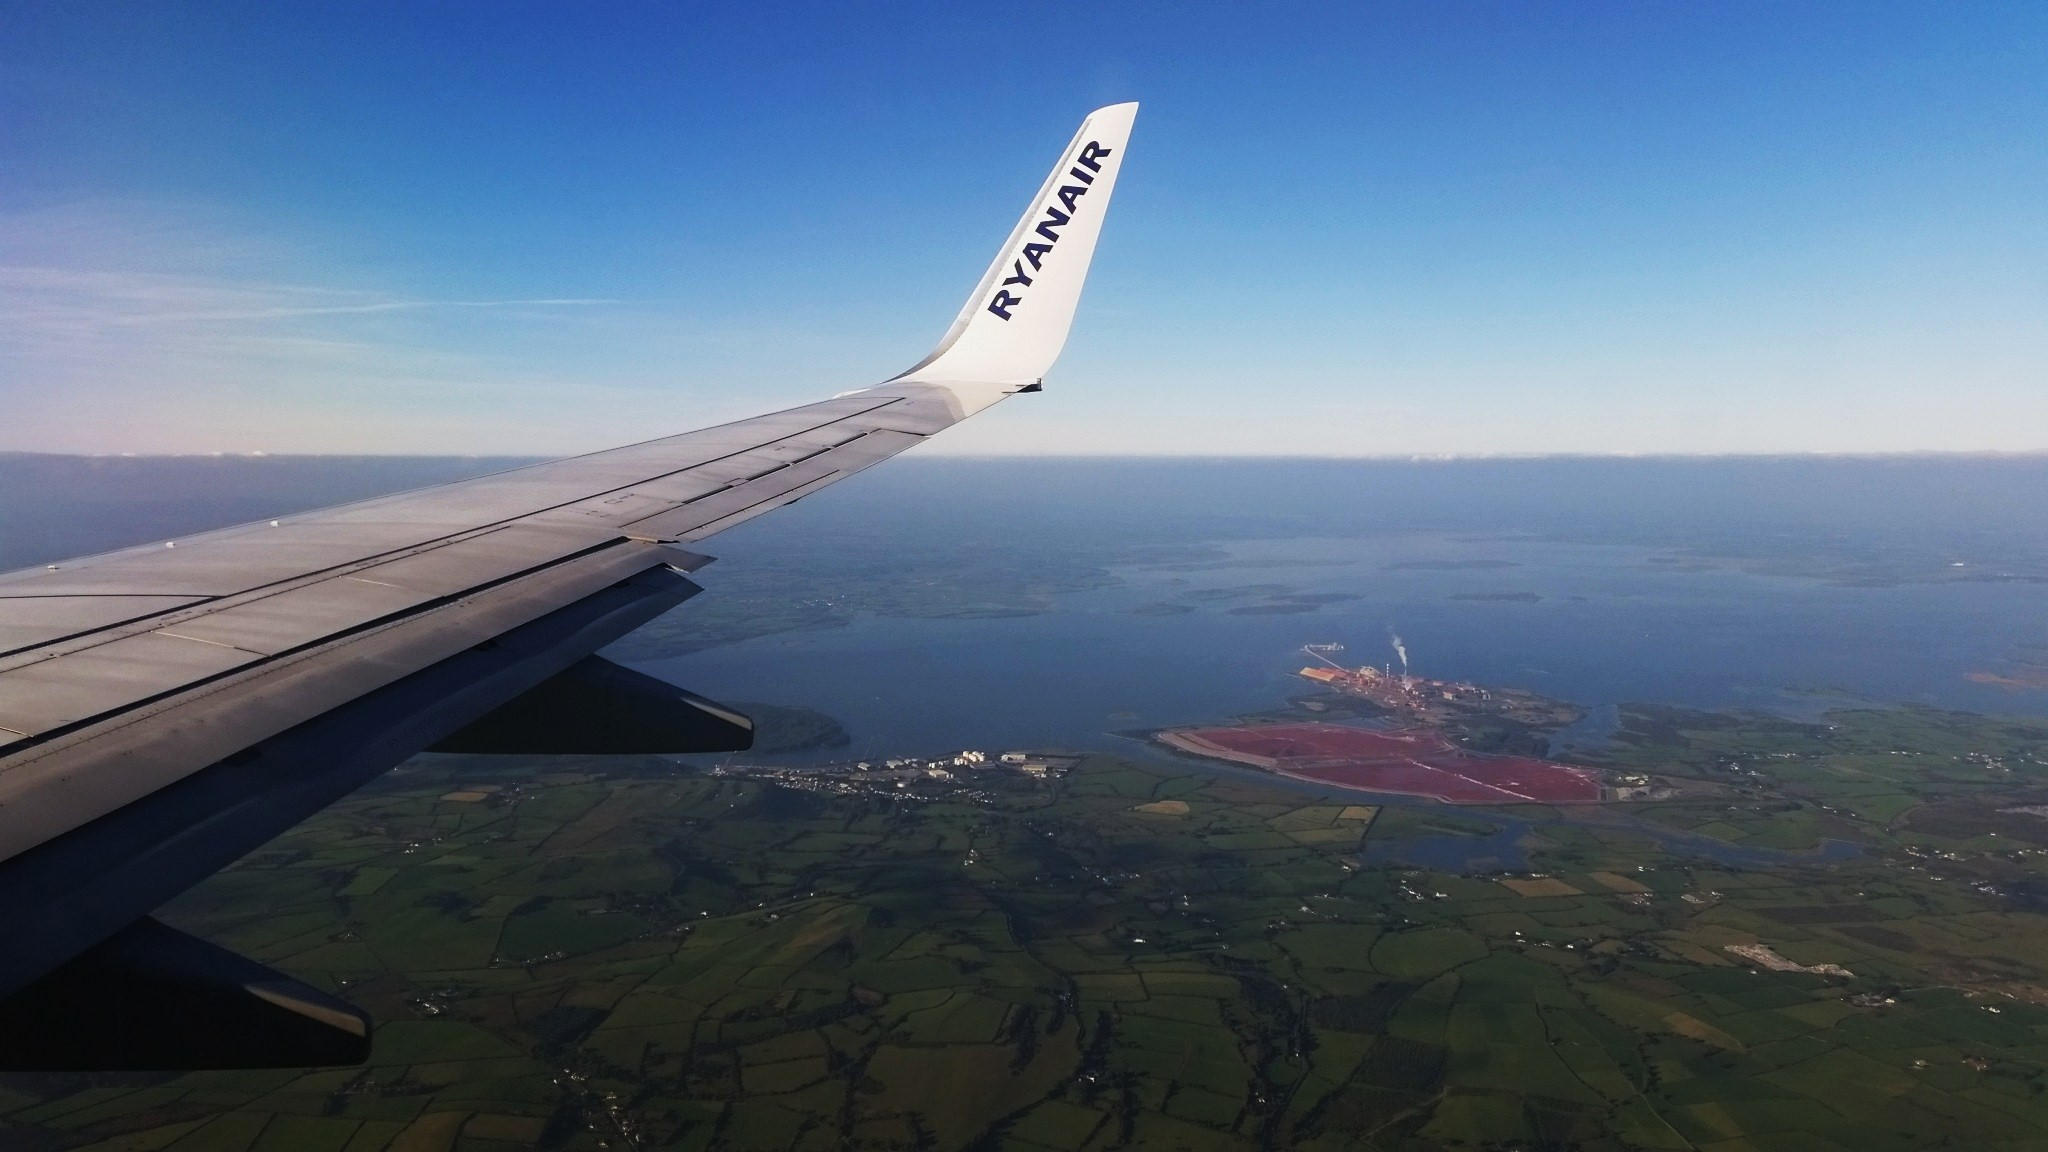 A Ryanair flight over Aughinish Alumina before crossing over the Shannon Estuary and landing in Shannon Airport. Photo Mark Dunphy